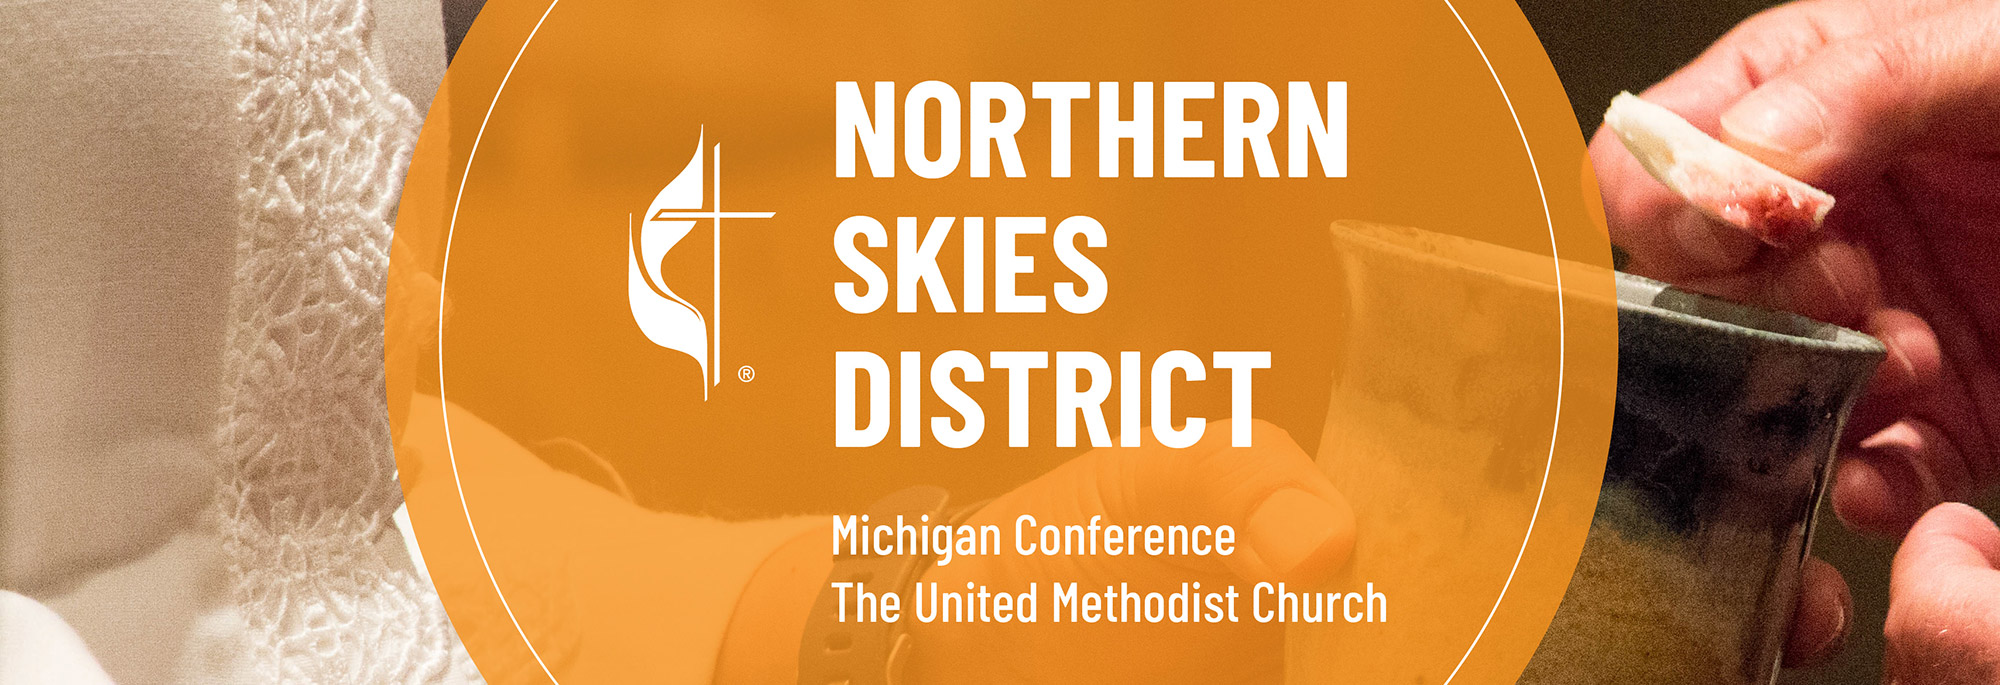 Northern Skies District Logo